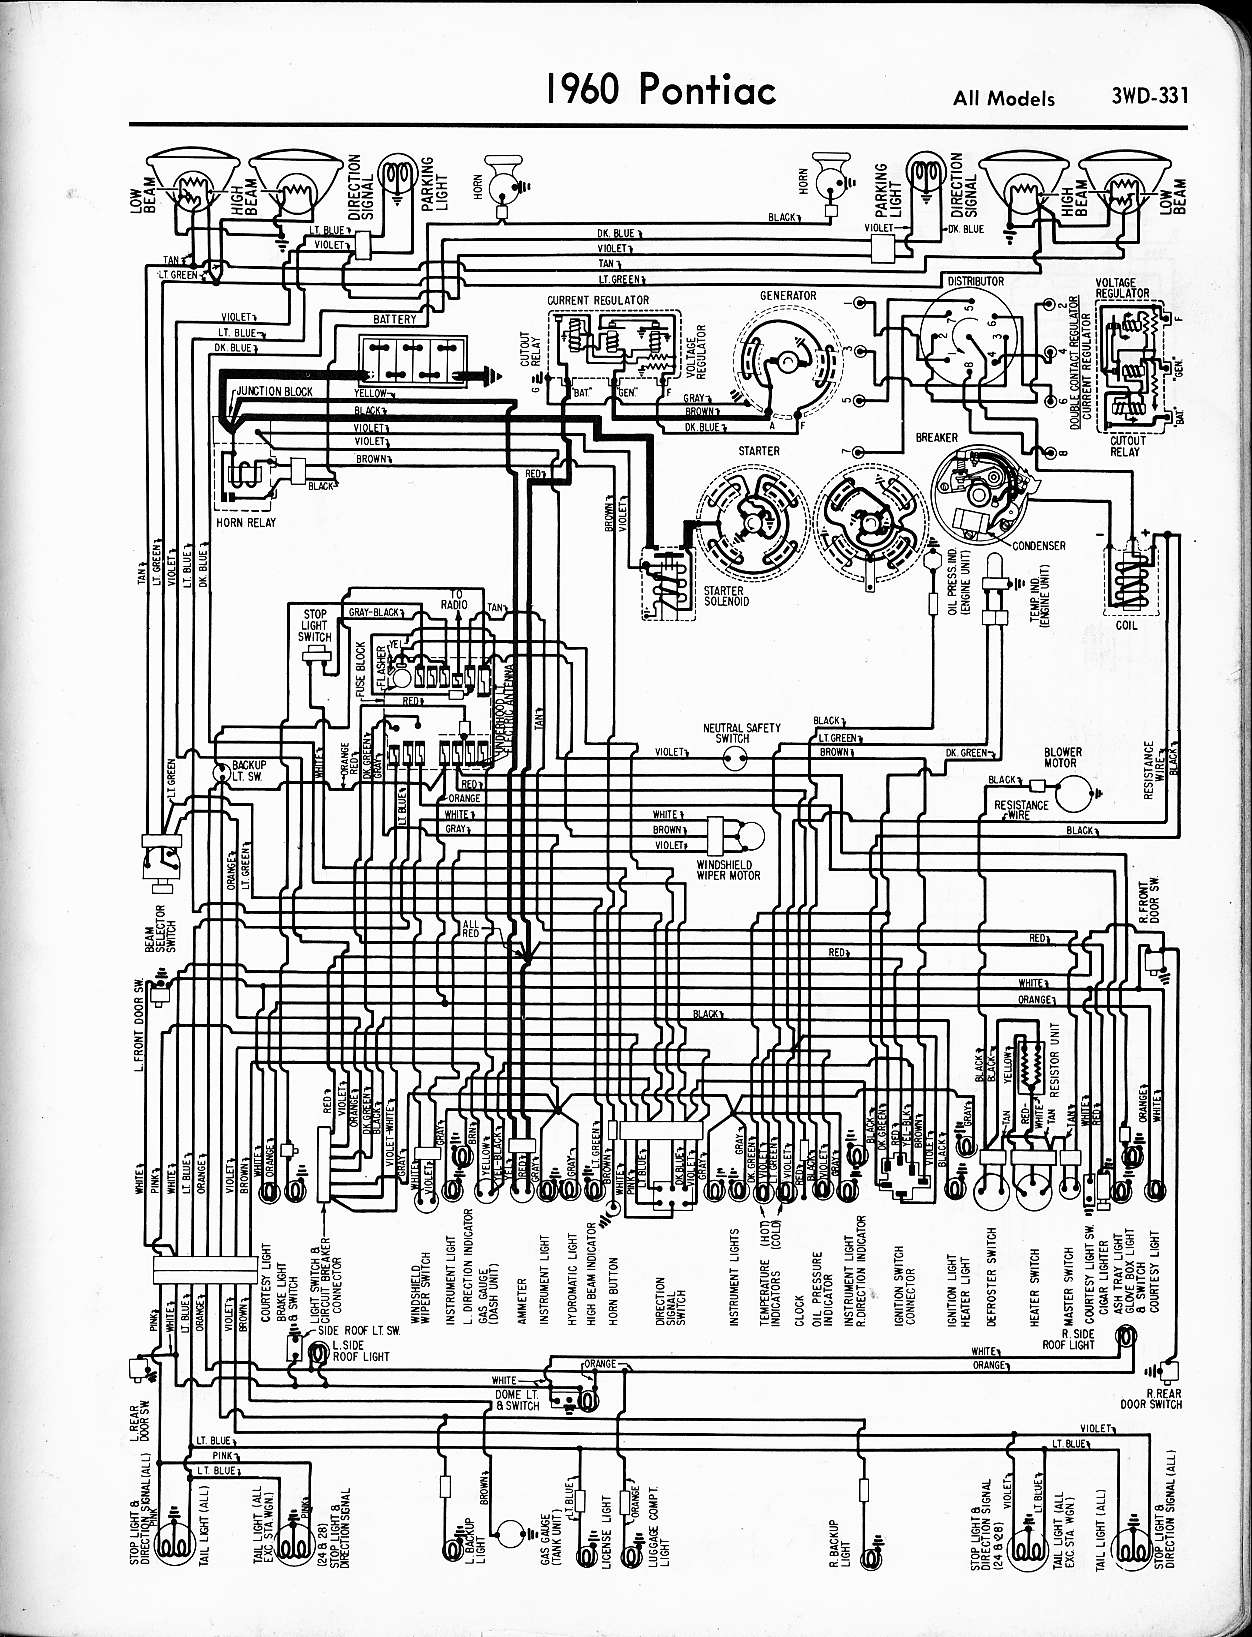 Pontiaccar Wiring Diagram Guide And Troubleshooting Of Switch Together With Fender Jazz Bass Pontiac 1957 1965 Rh Oldcarmanualproject Com 2018 Gto